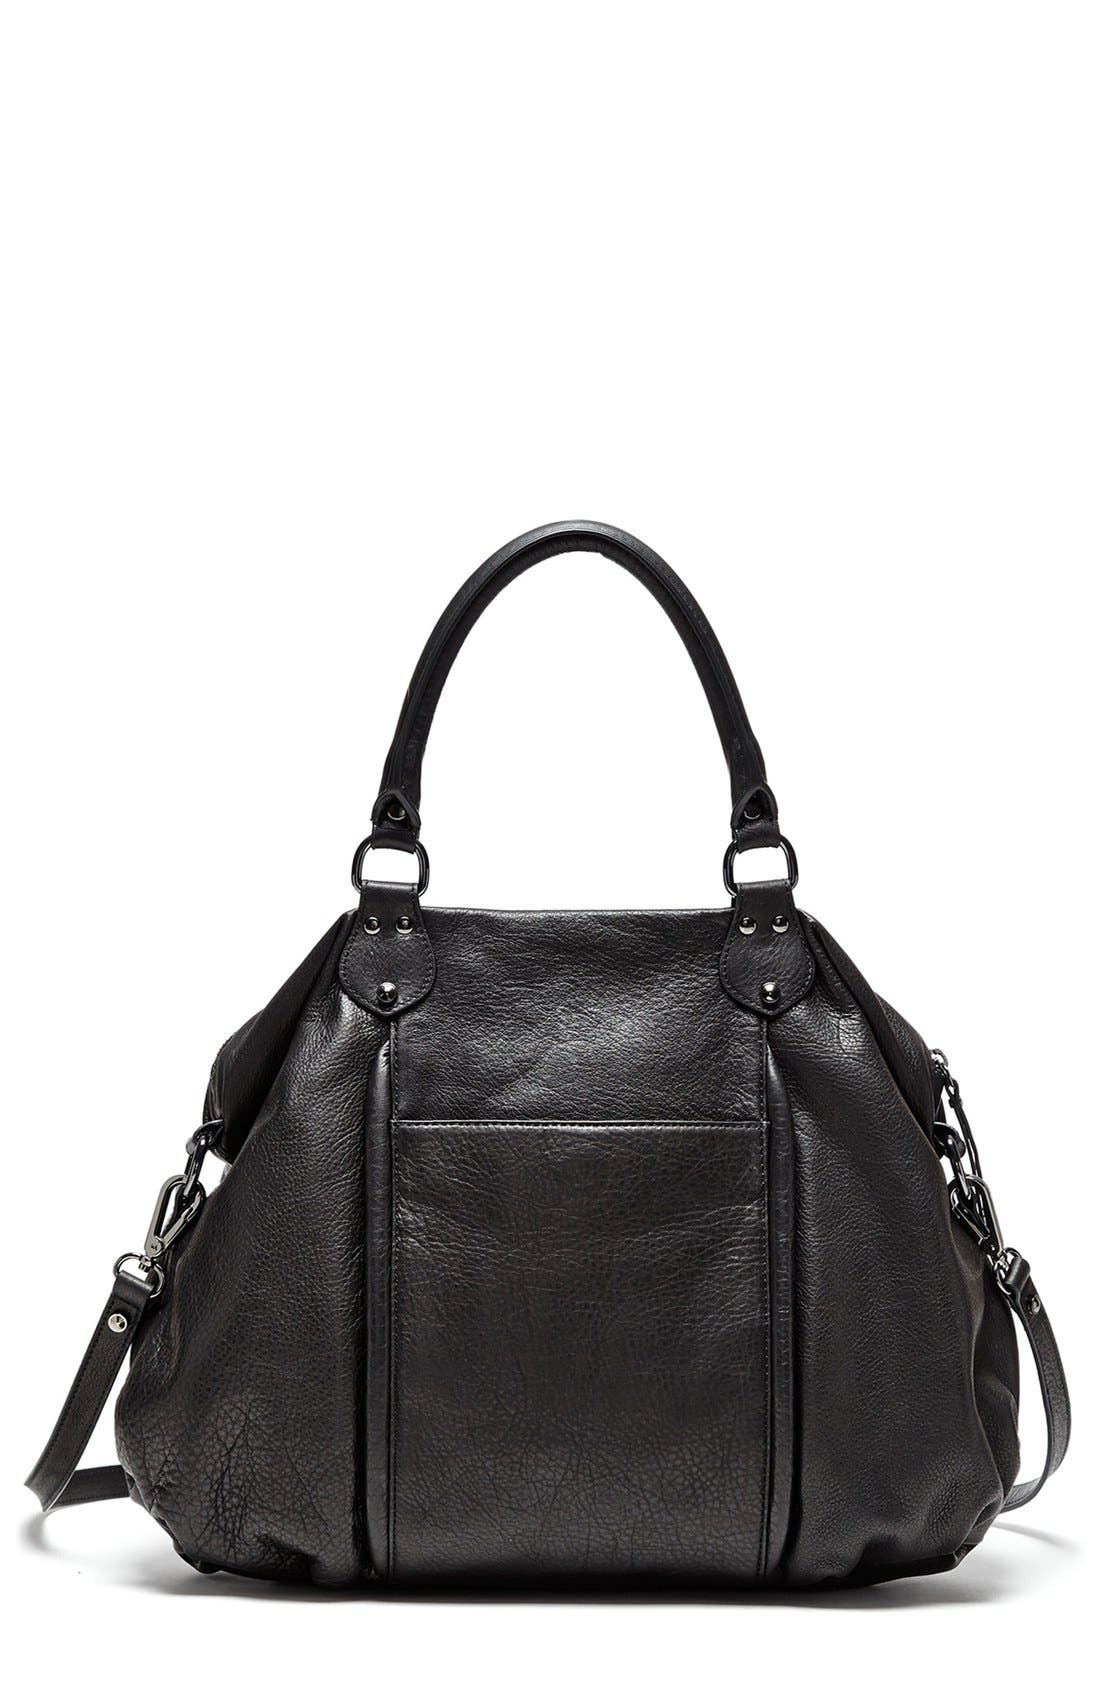 'All Day' Leather Satchel,                             Alternate thumbnail 2, color,                             001